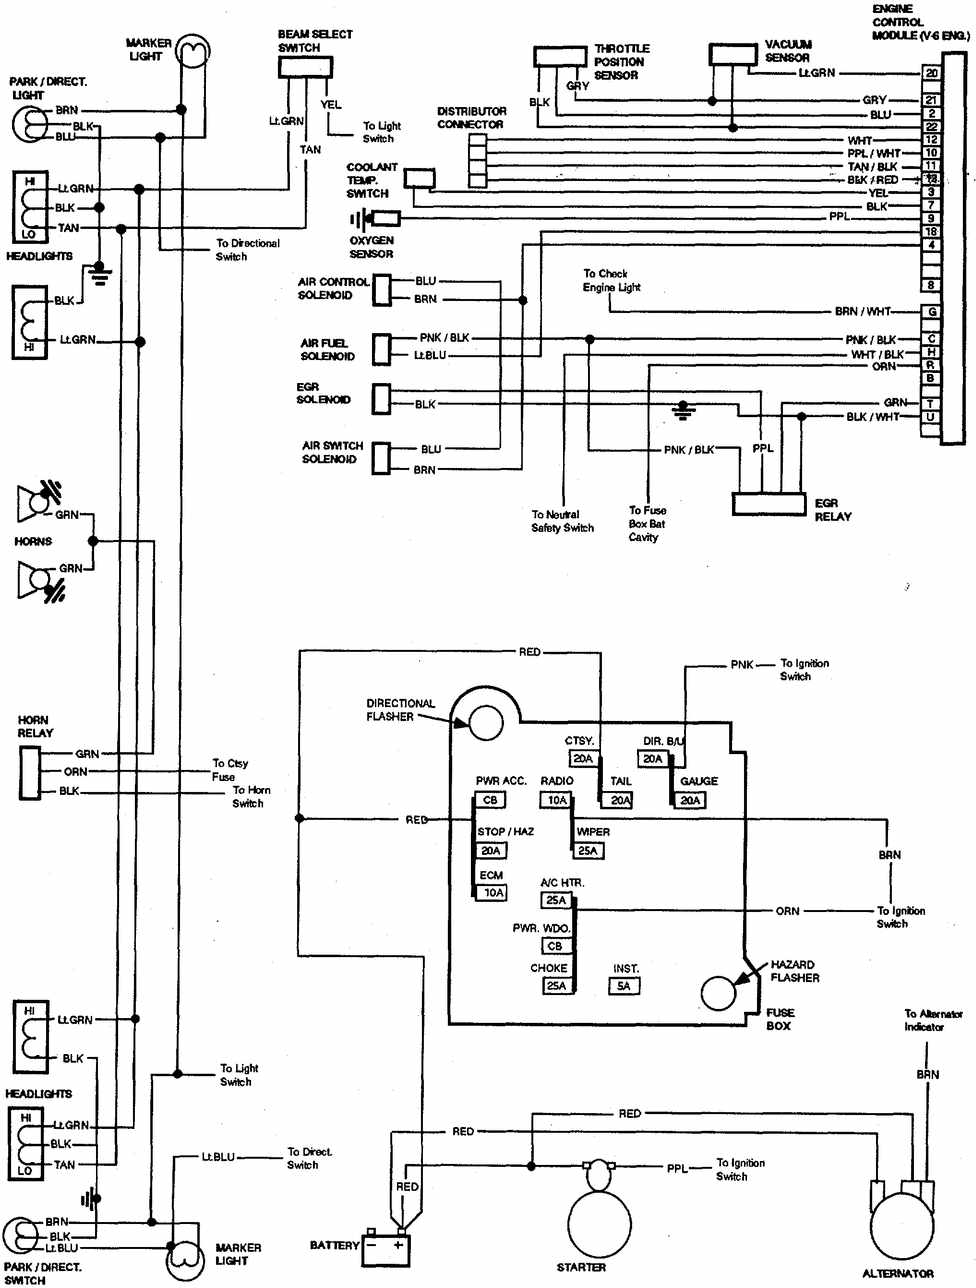 1986 camaro radio wiring diagram